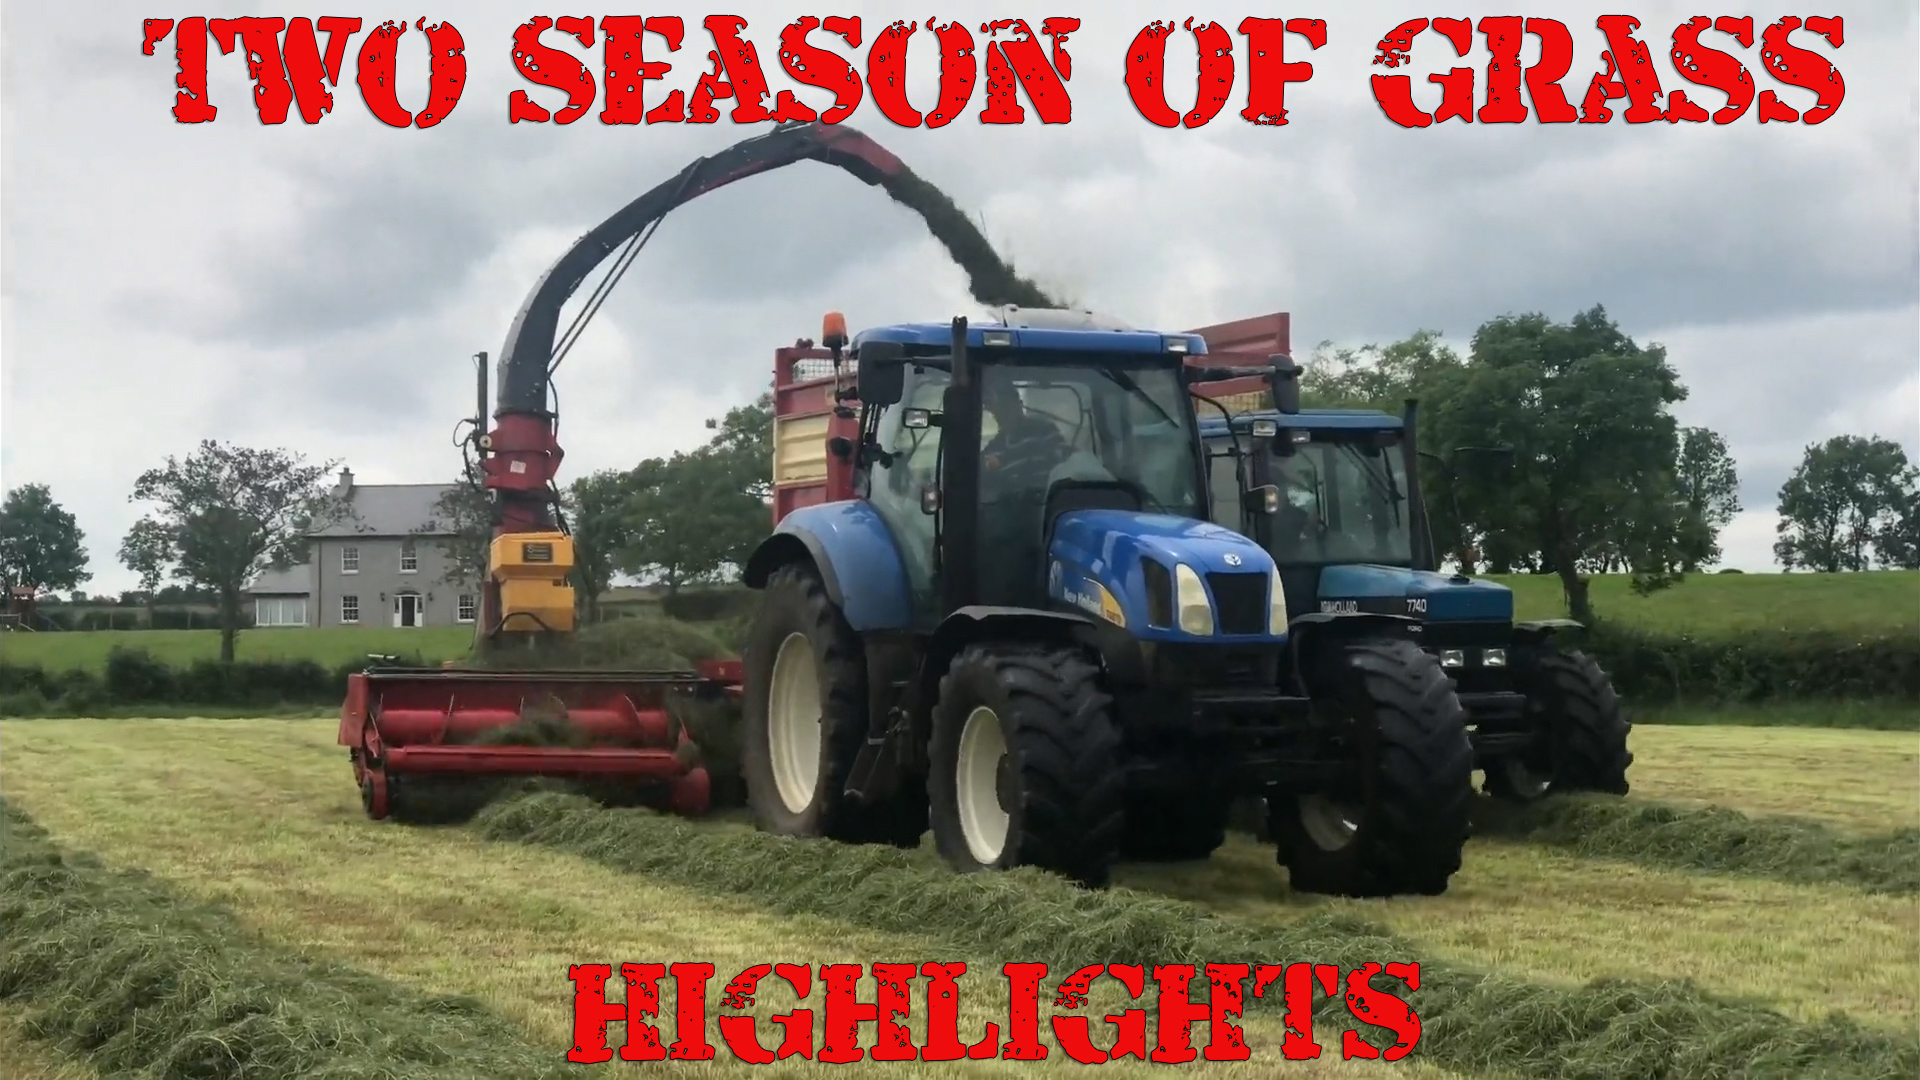 Two seasons of GRASS highlights!